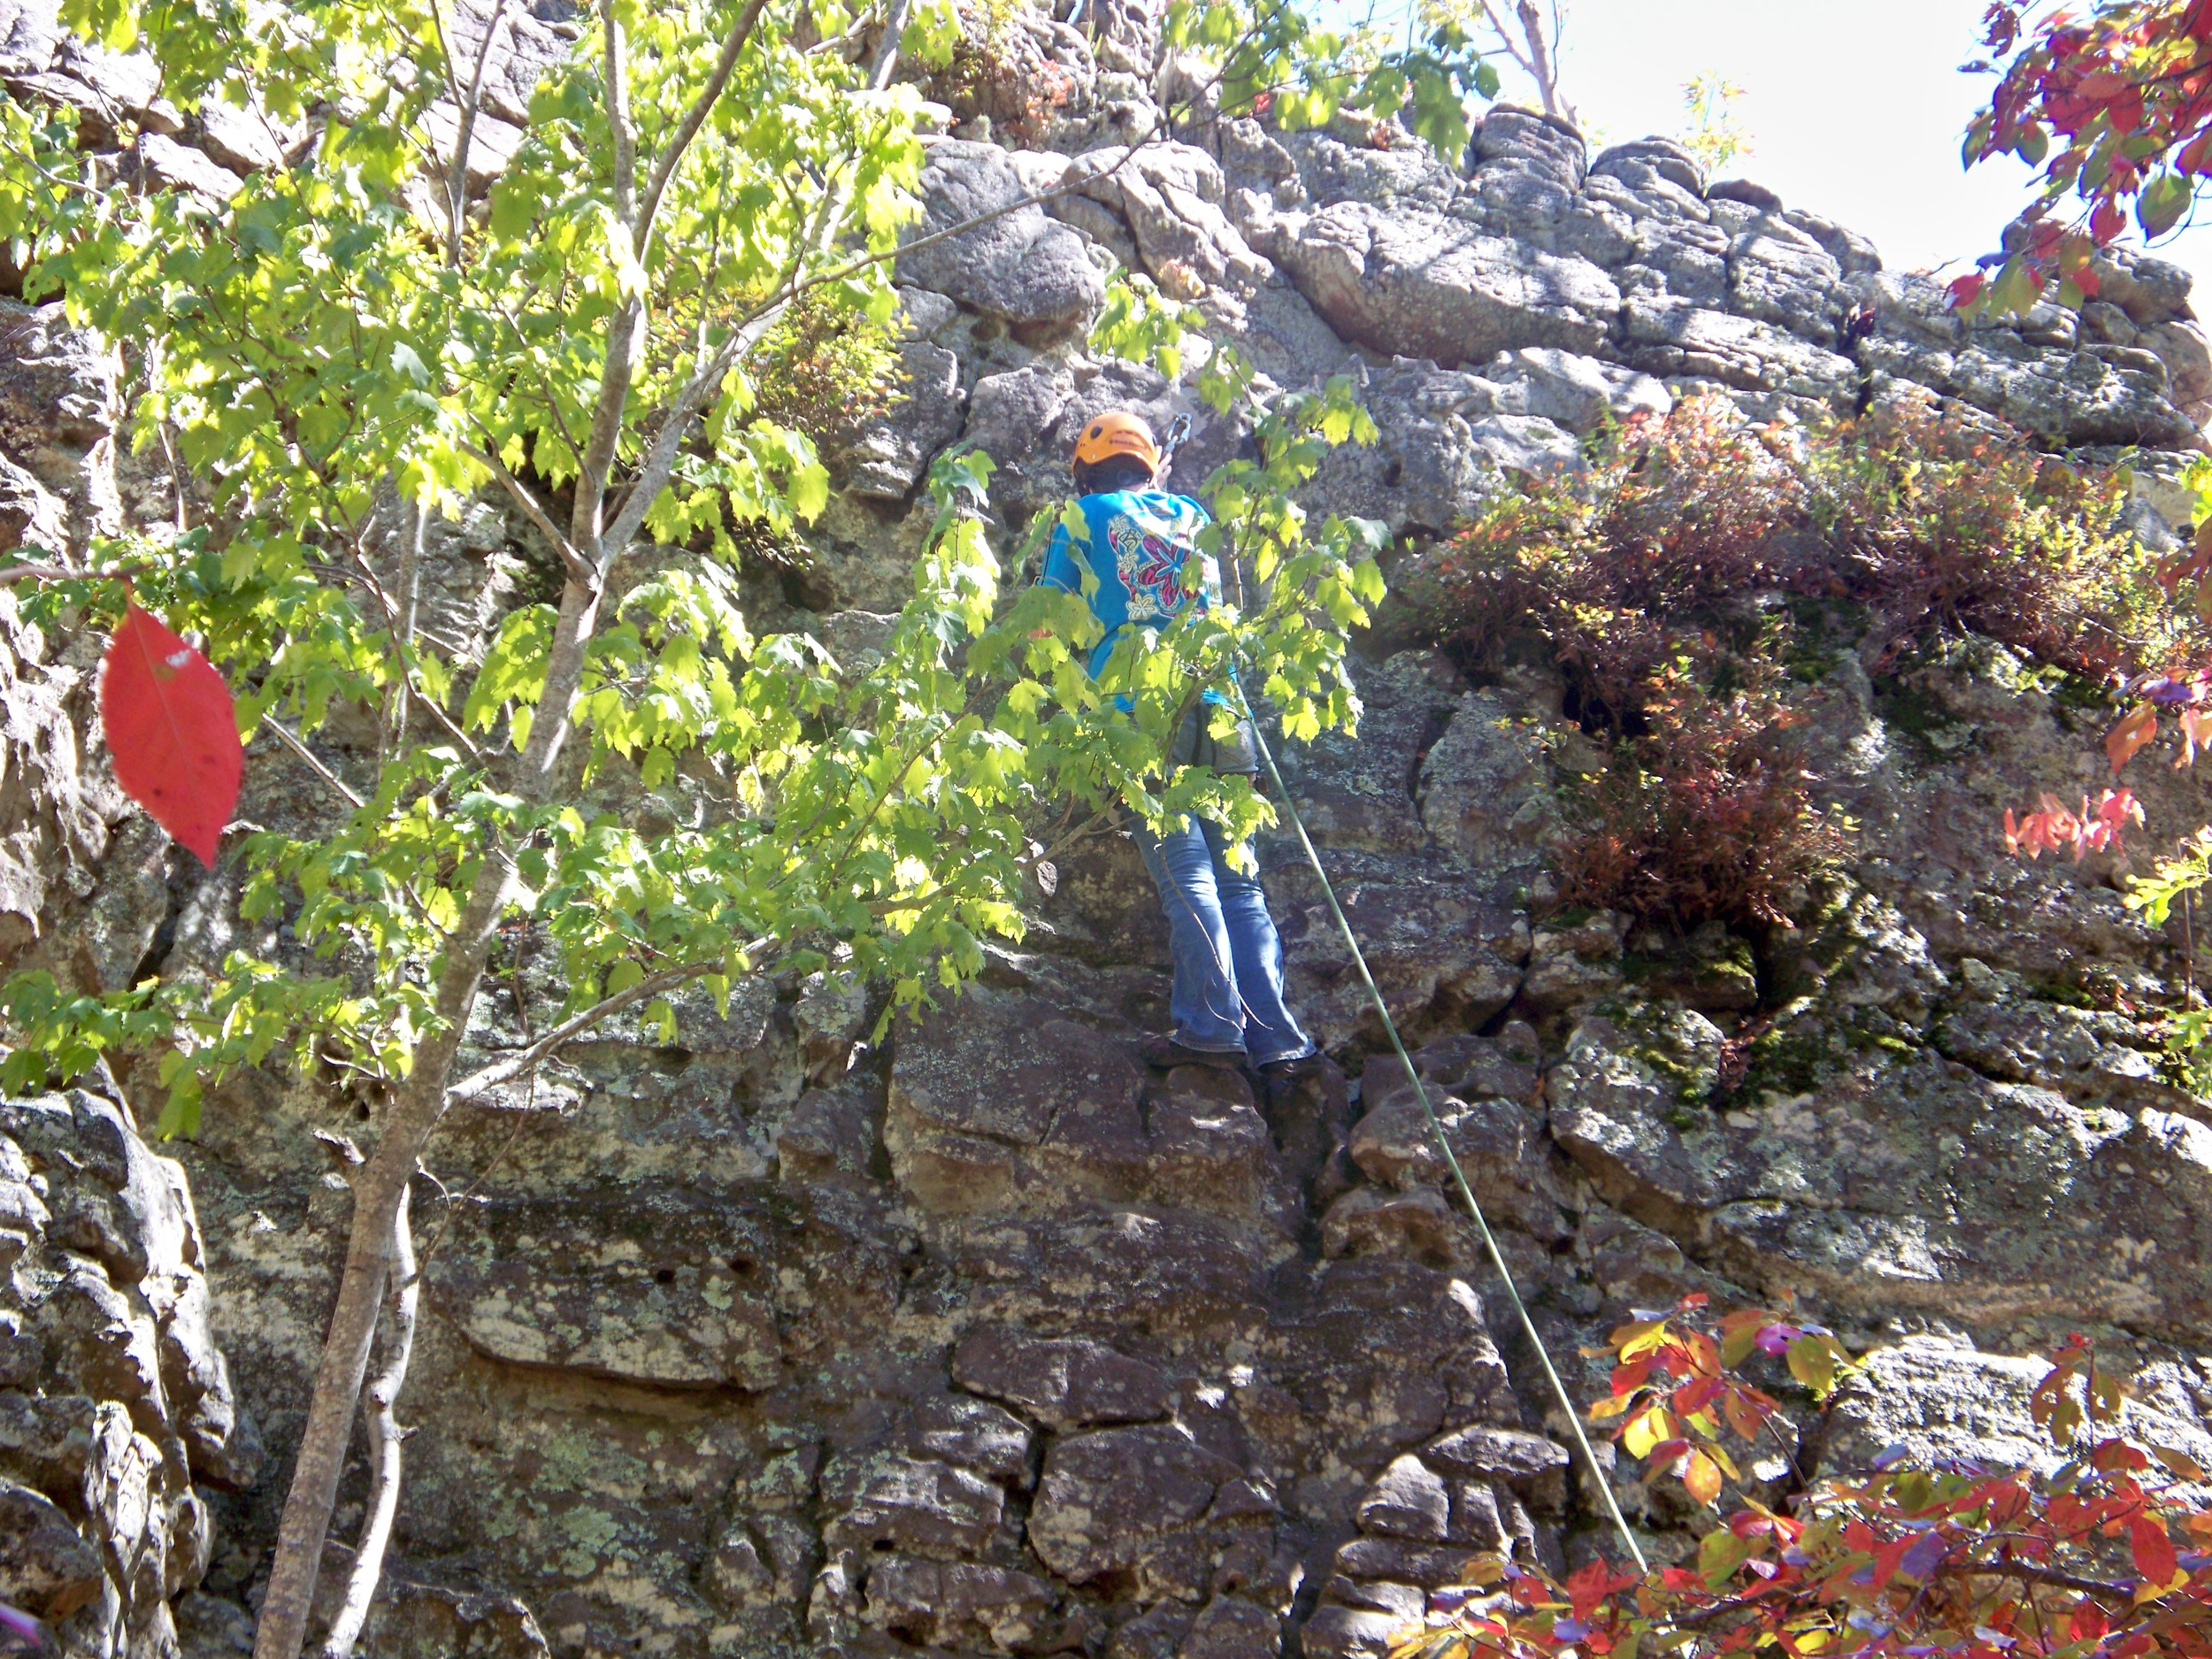 Katie climbing to the treetops on the bluffs